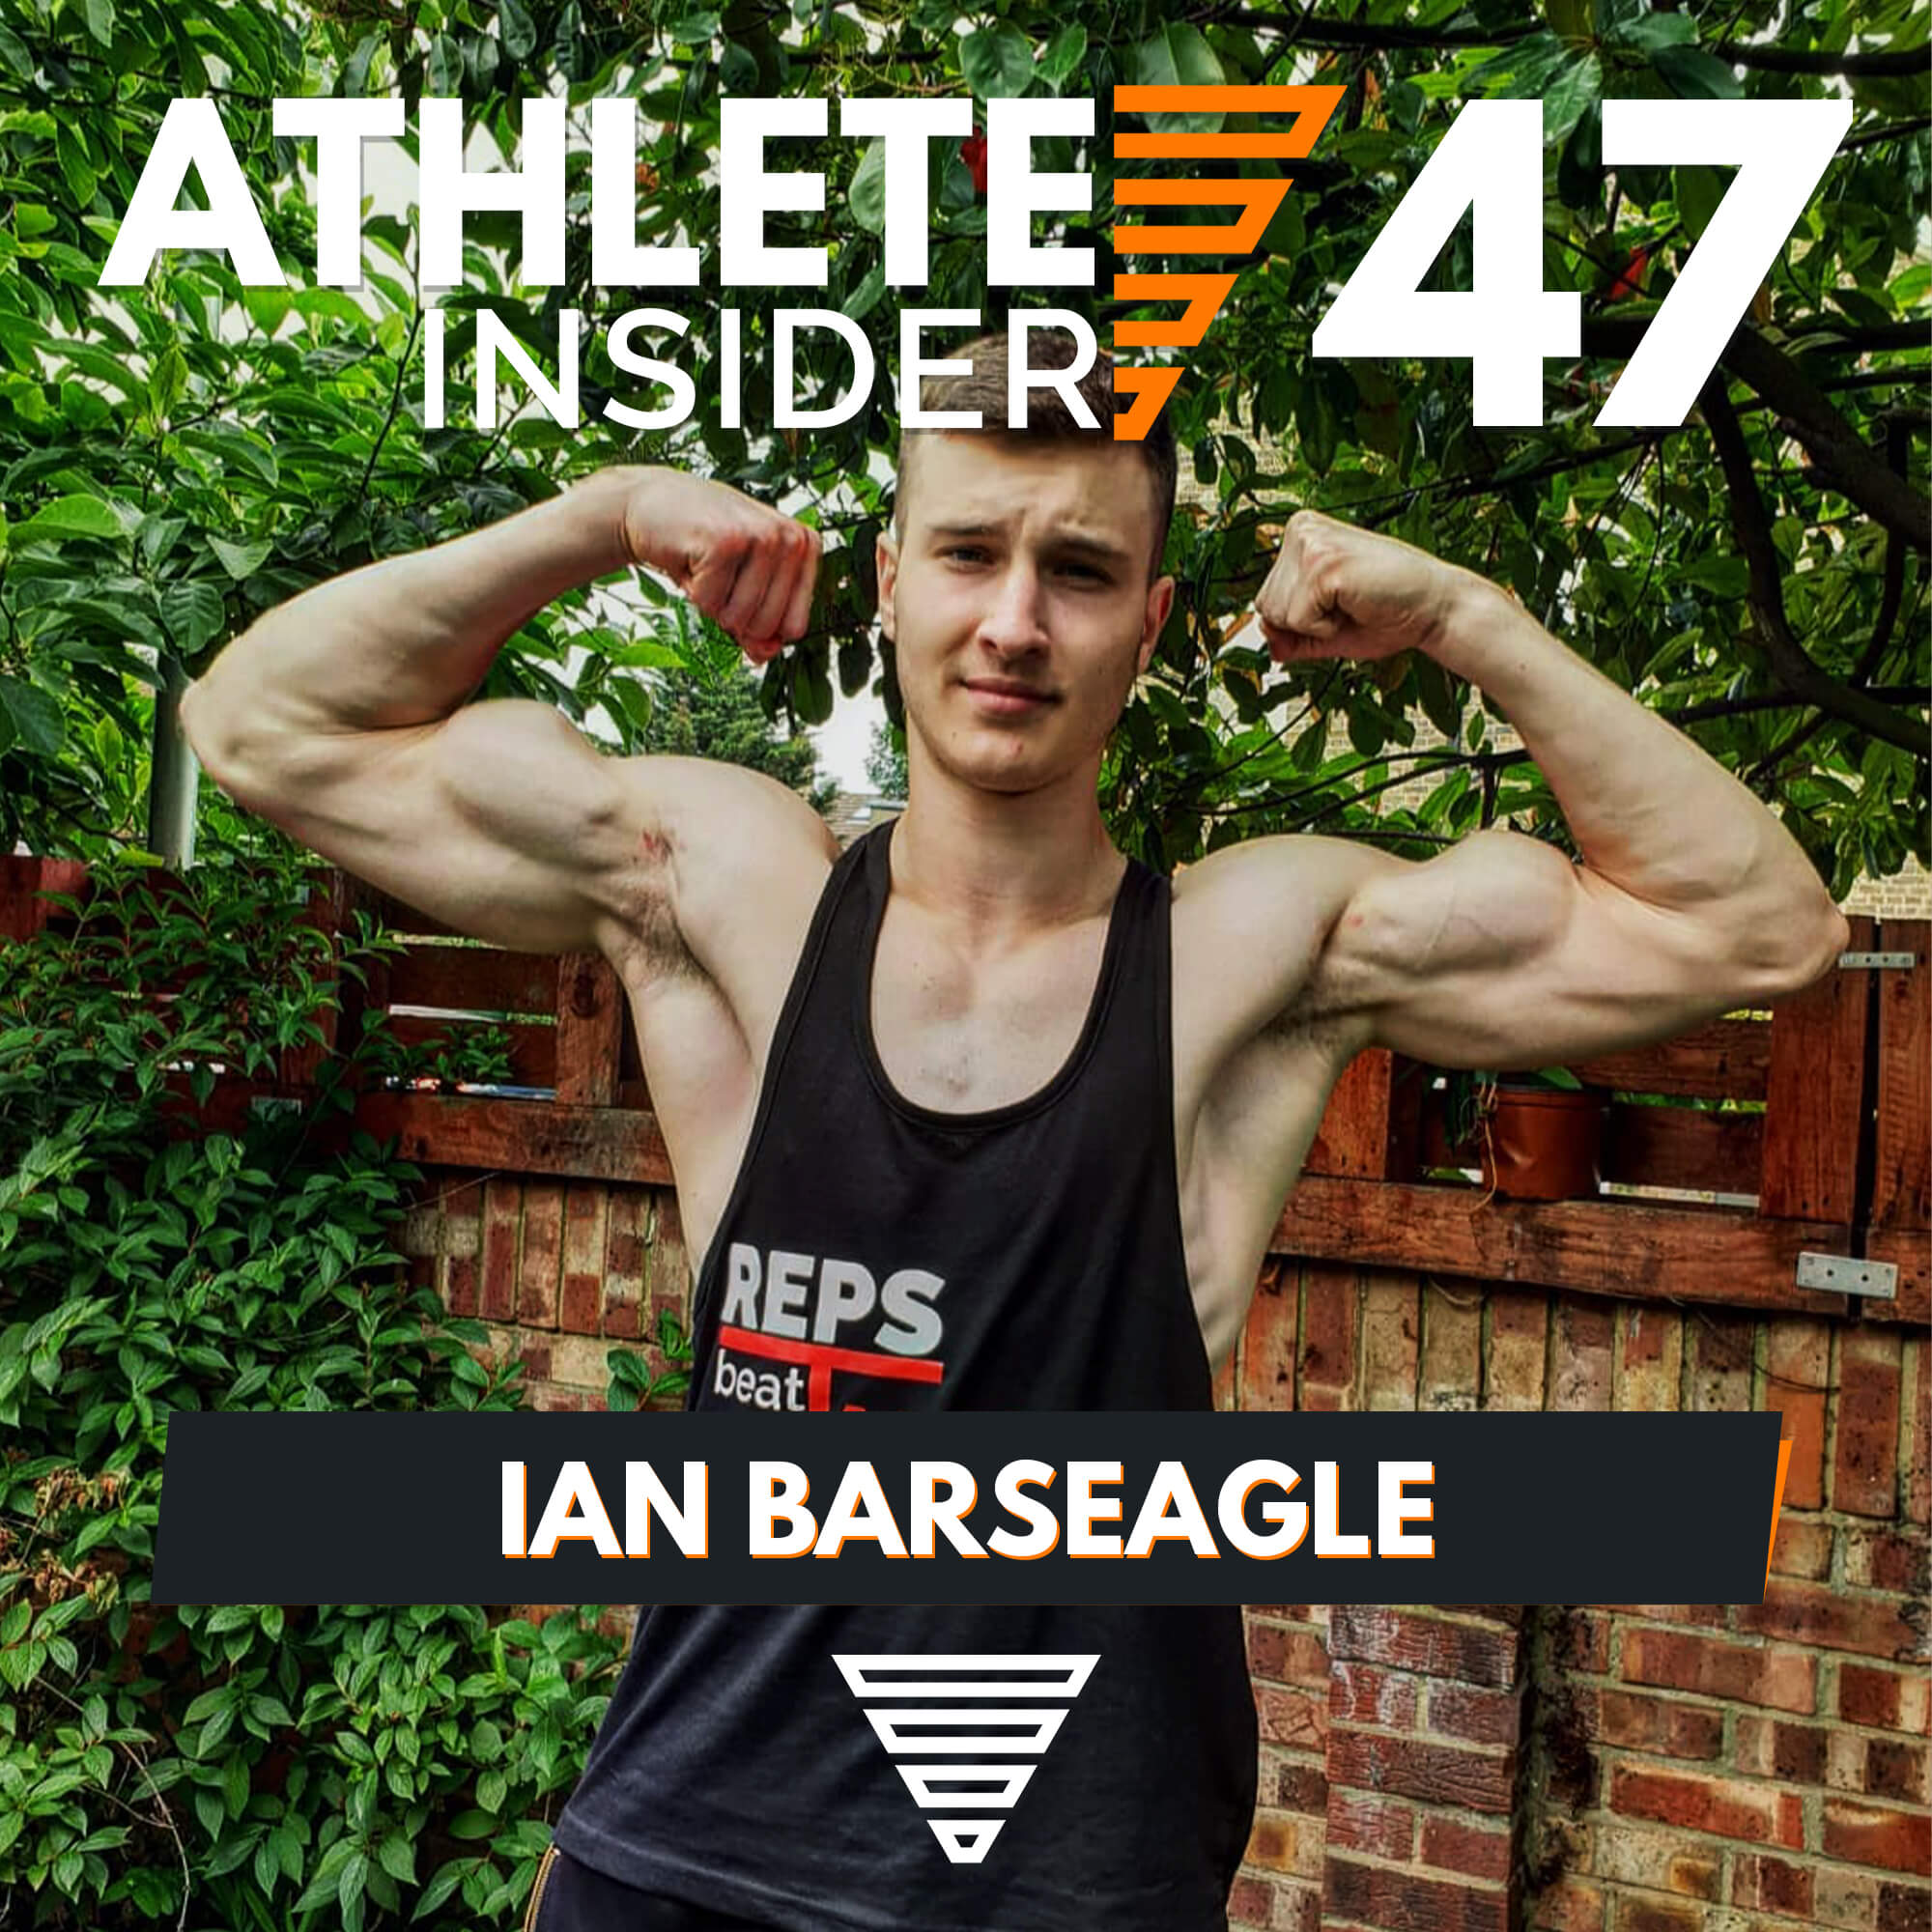 IAN BARSEAGLE | 1,88m Full Planche in 4 Months | Interview | The Athlete Insider Podcast #47